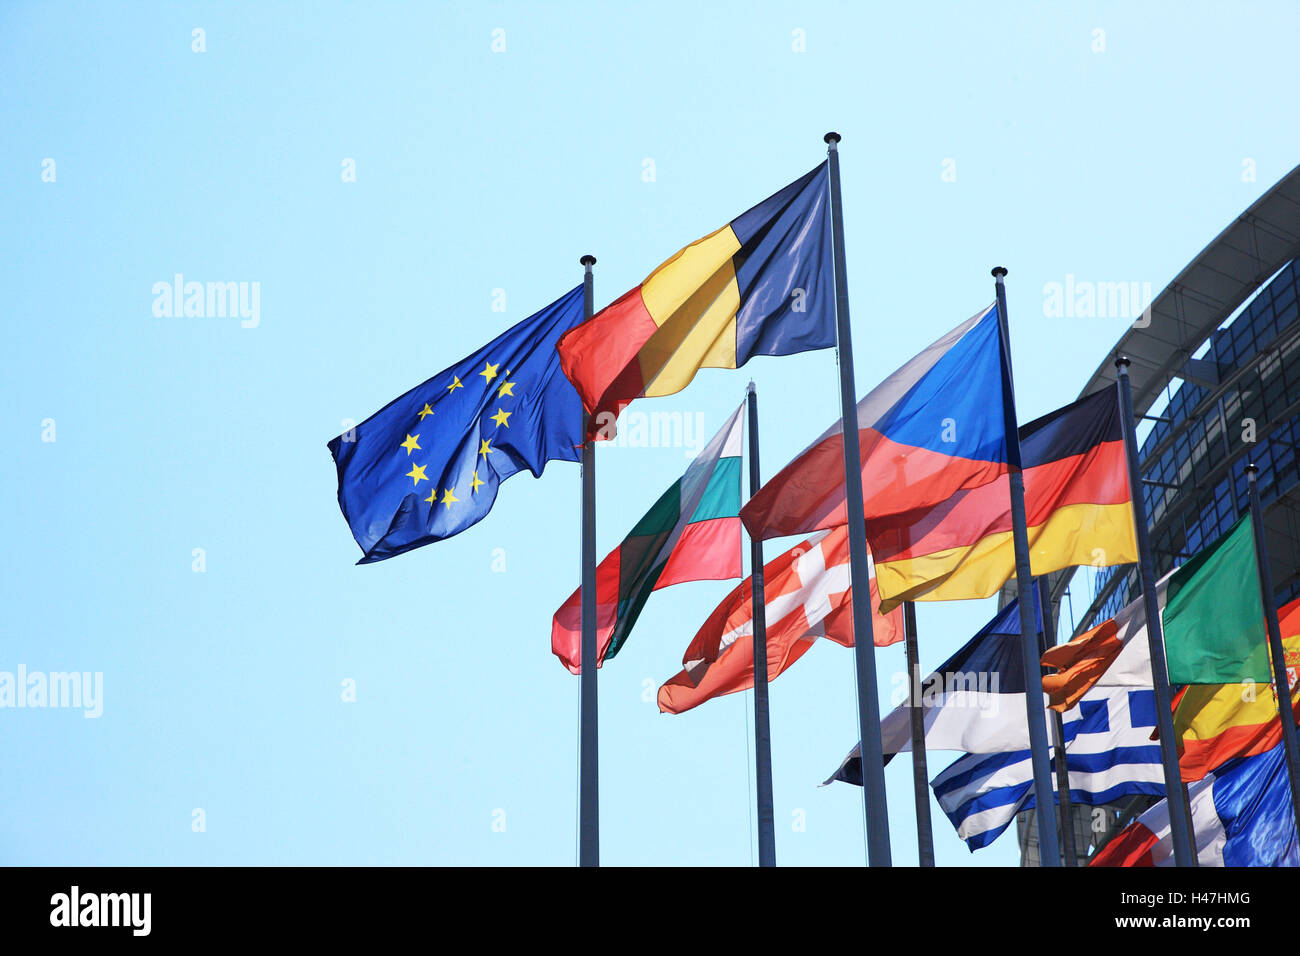 Europe, flags, Europe, France, flags, blow, parliament, politics, Alsace, Strasbourg, - Stock Image